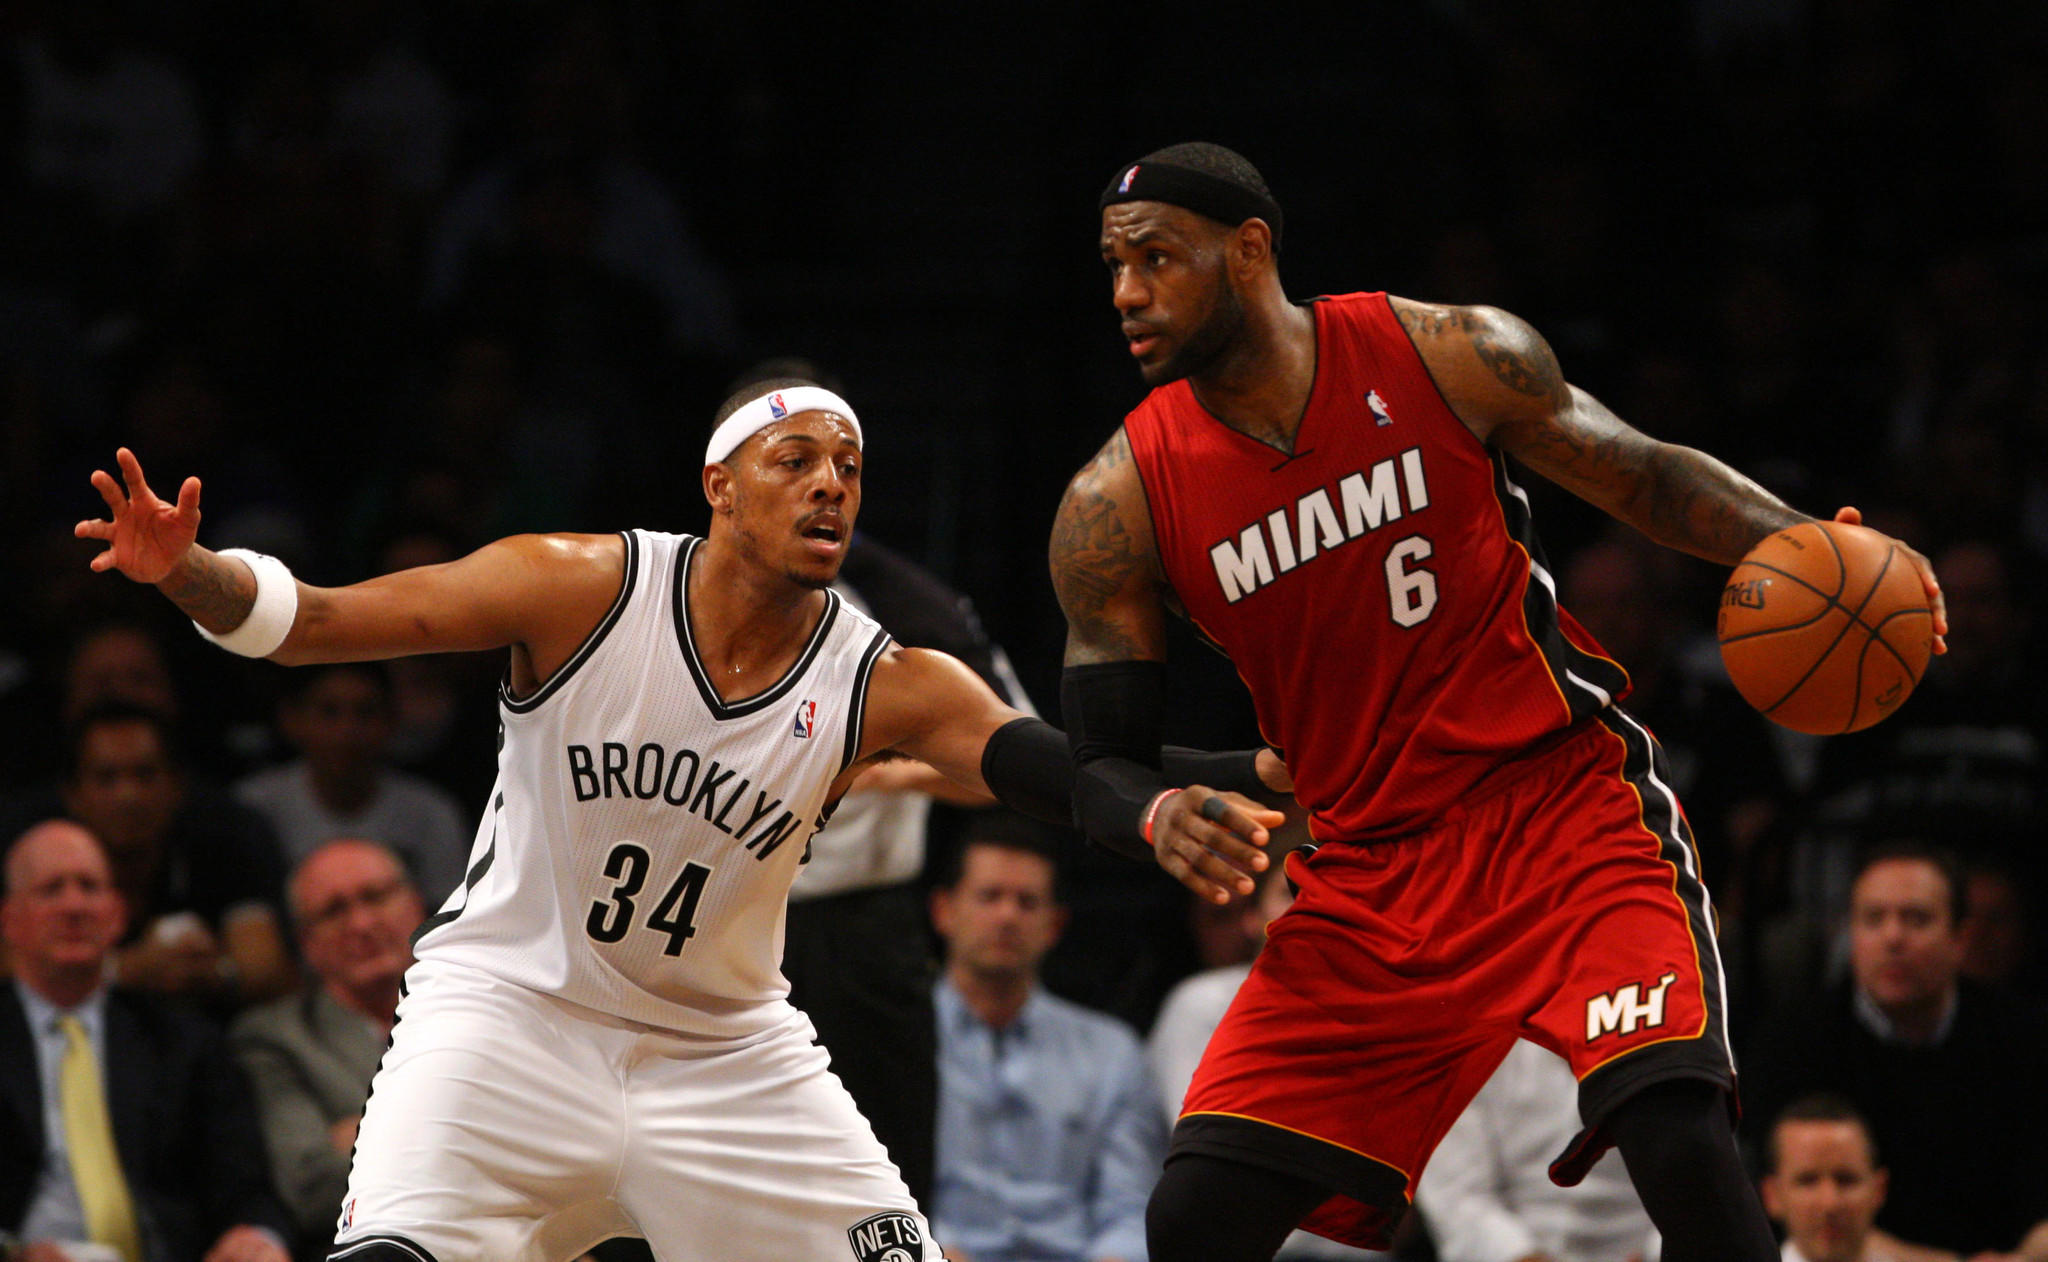 Nets forward Paul Pierce defends Heat forward LeBron James in the second half of Game 4 Monday at the Barclays Center.